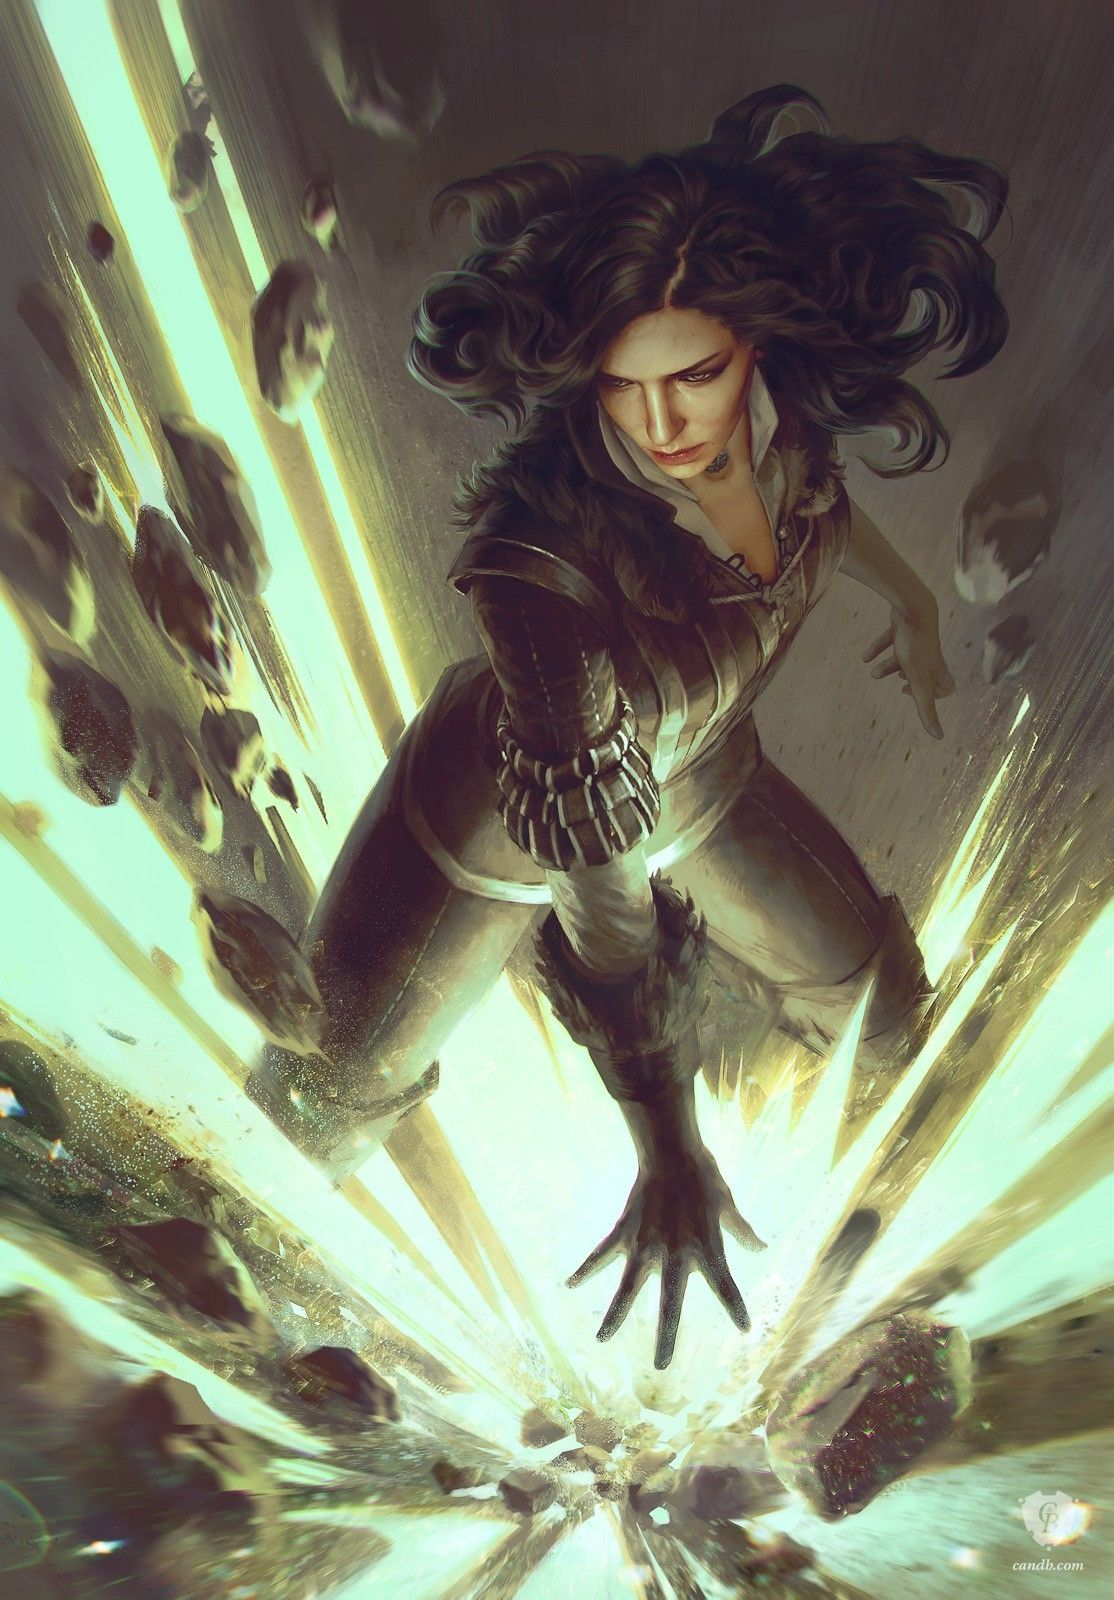 Yennefer The Summoner Is An Official Concept Artwork For Witcher 3 Wild Hunt Video Game Created By CD PROJEKT RED Artist That Made This Ima